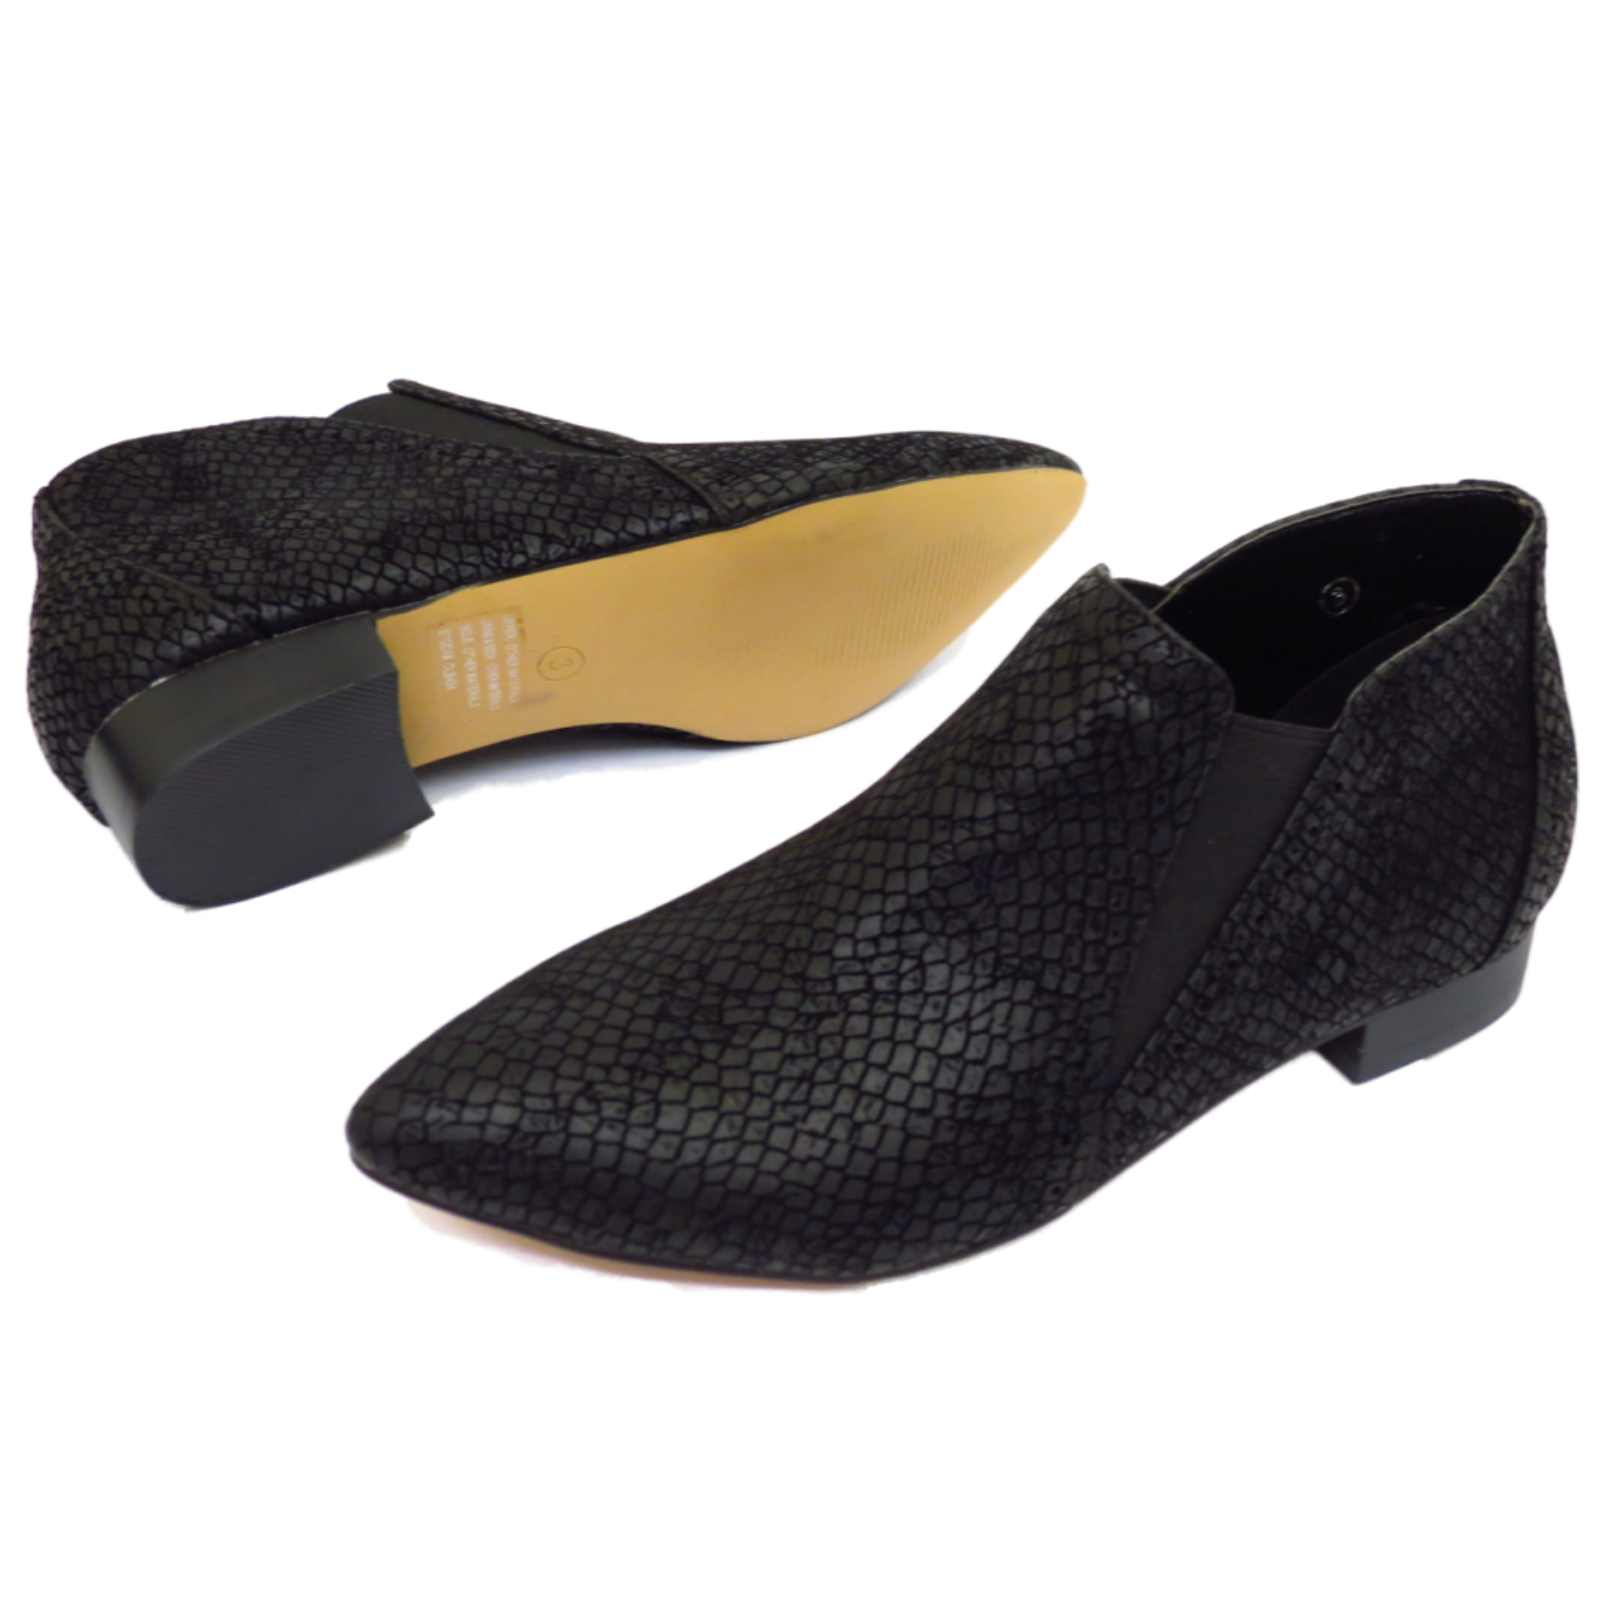 Free shipping BOTH ways on black pointed toe shoes, from our vast selection of styles. Fast delivery, and 24/7/ real-person service with a smile. Click or call